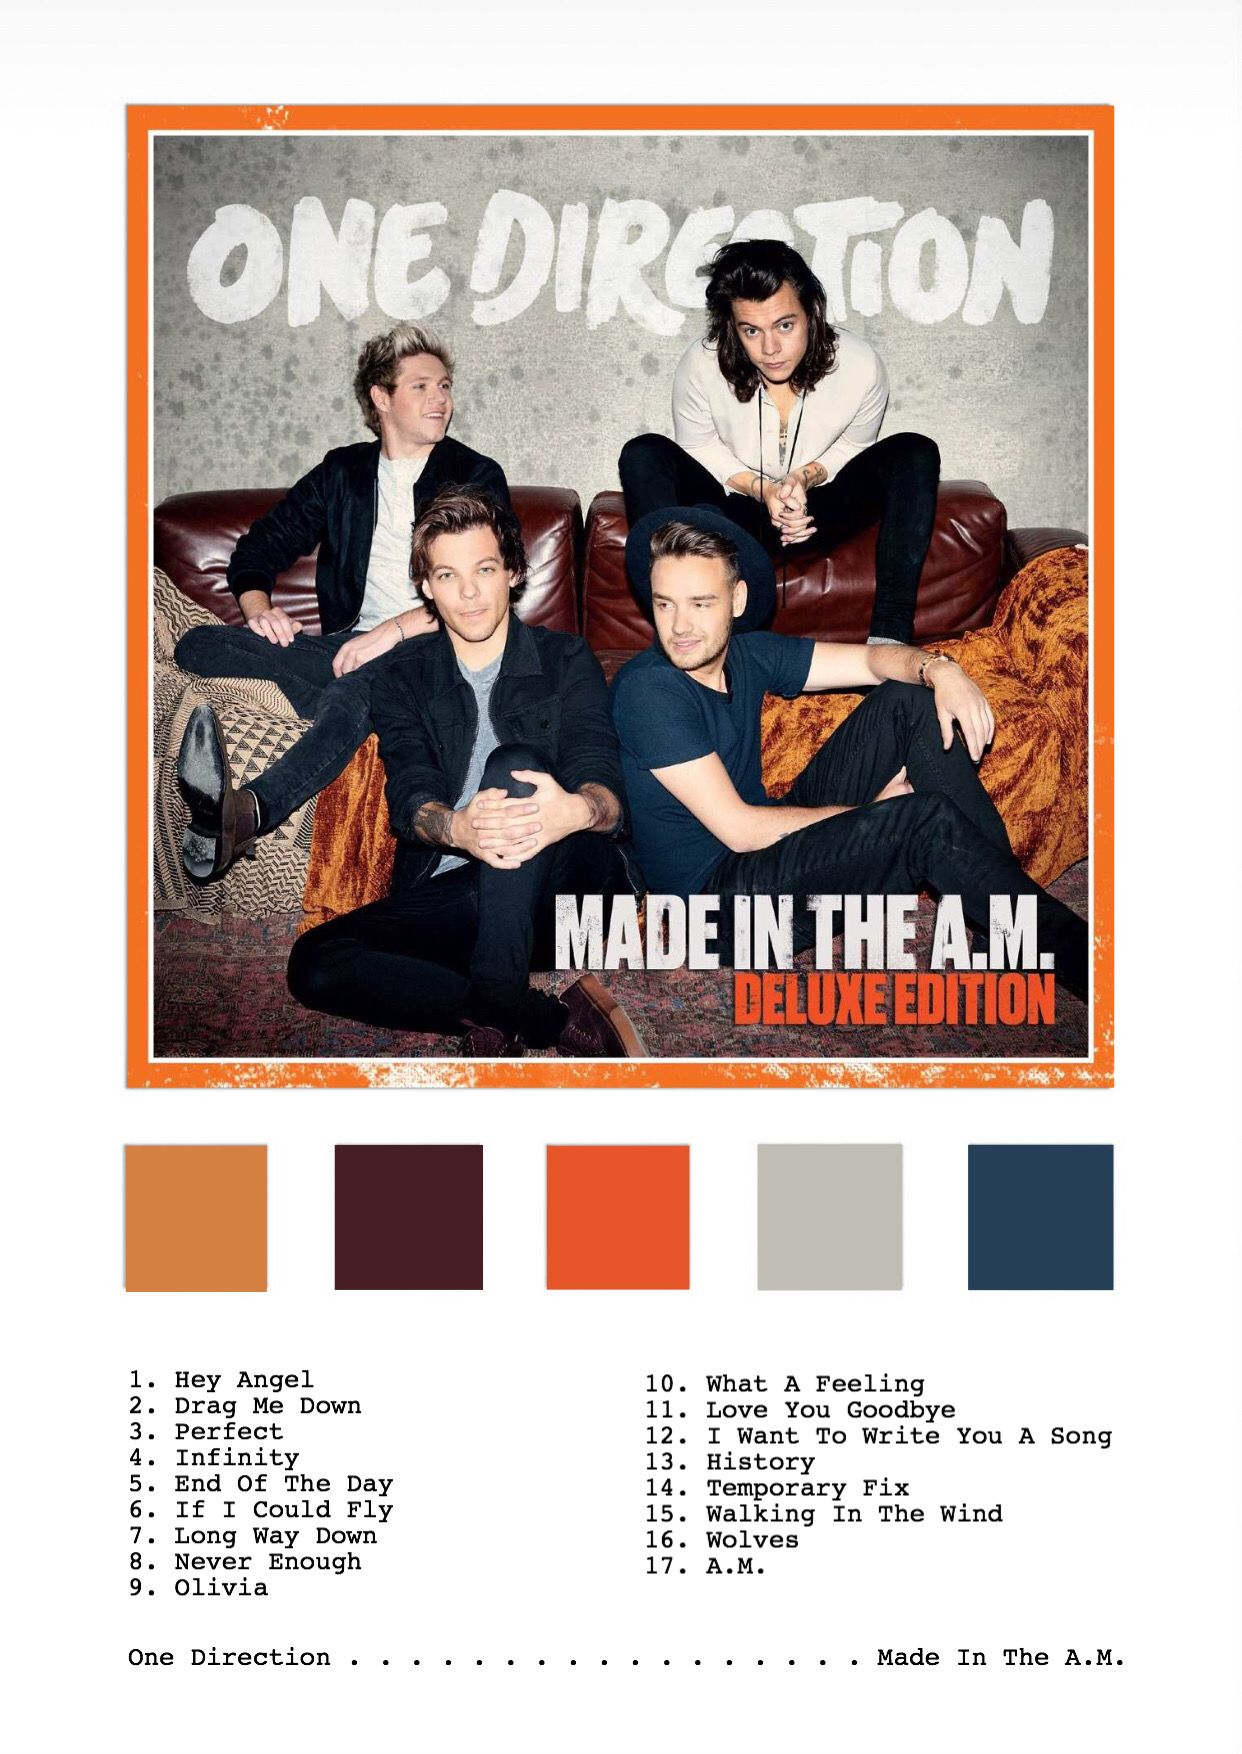 One Direction Made In The A M Album Print Onedirection 1d Harrystyles Niallhora One Direction Songs One Direction Albums One Direction Posters